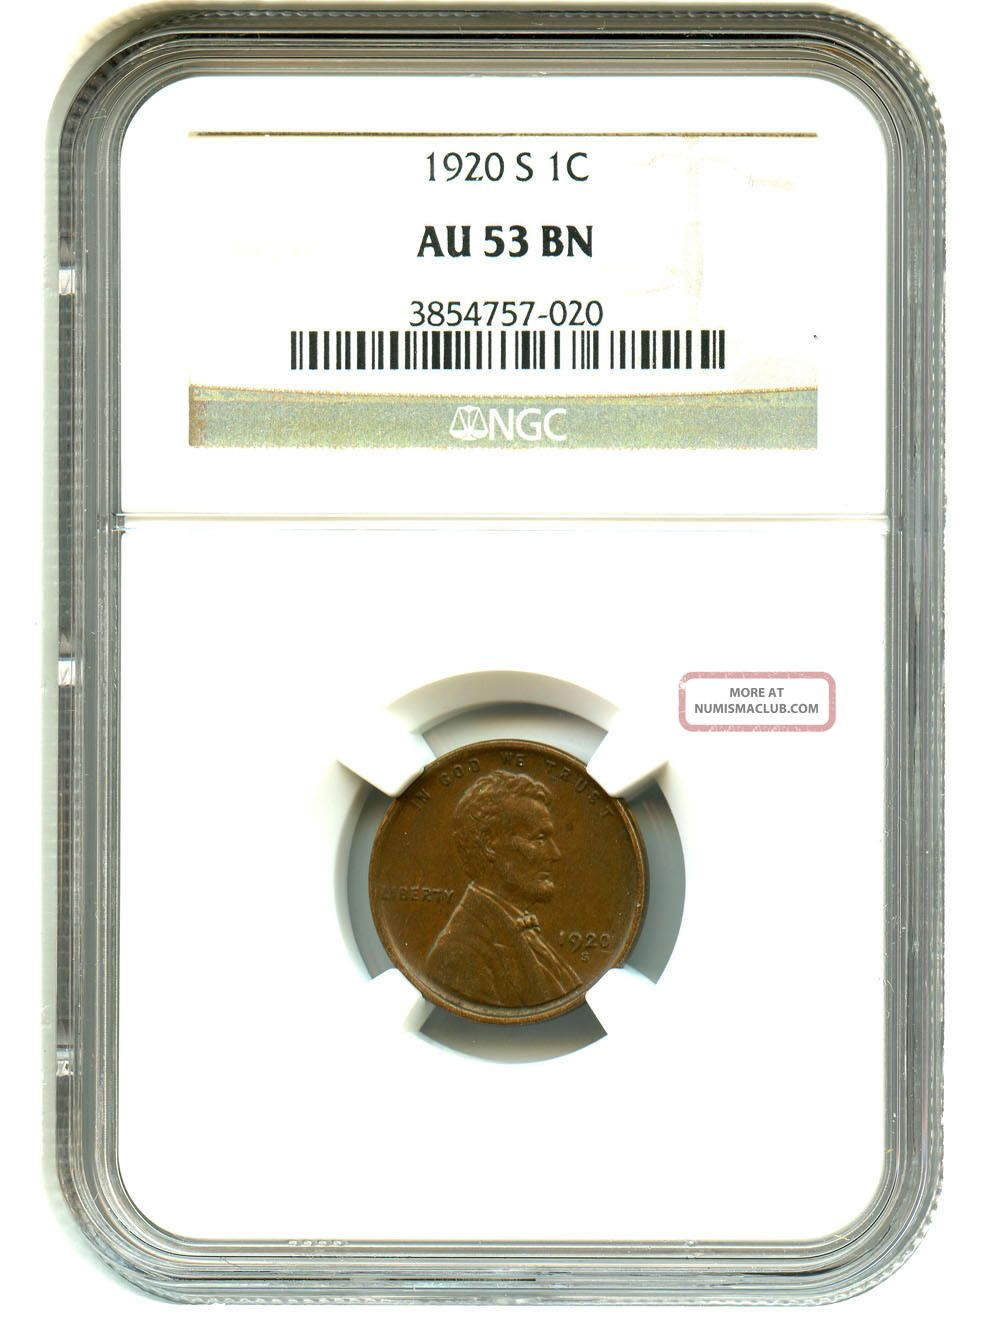 1920 - S 1c Ngc Au53 Lincoln Cent Small Cents photo